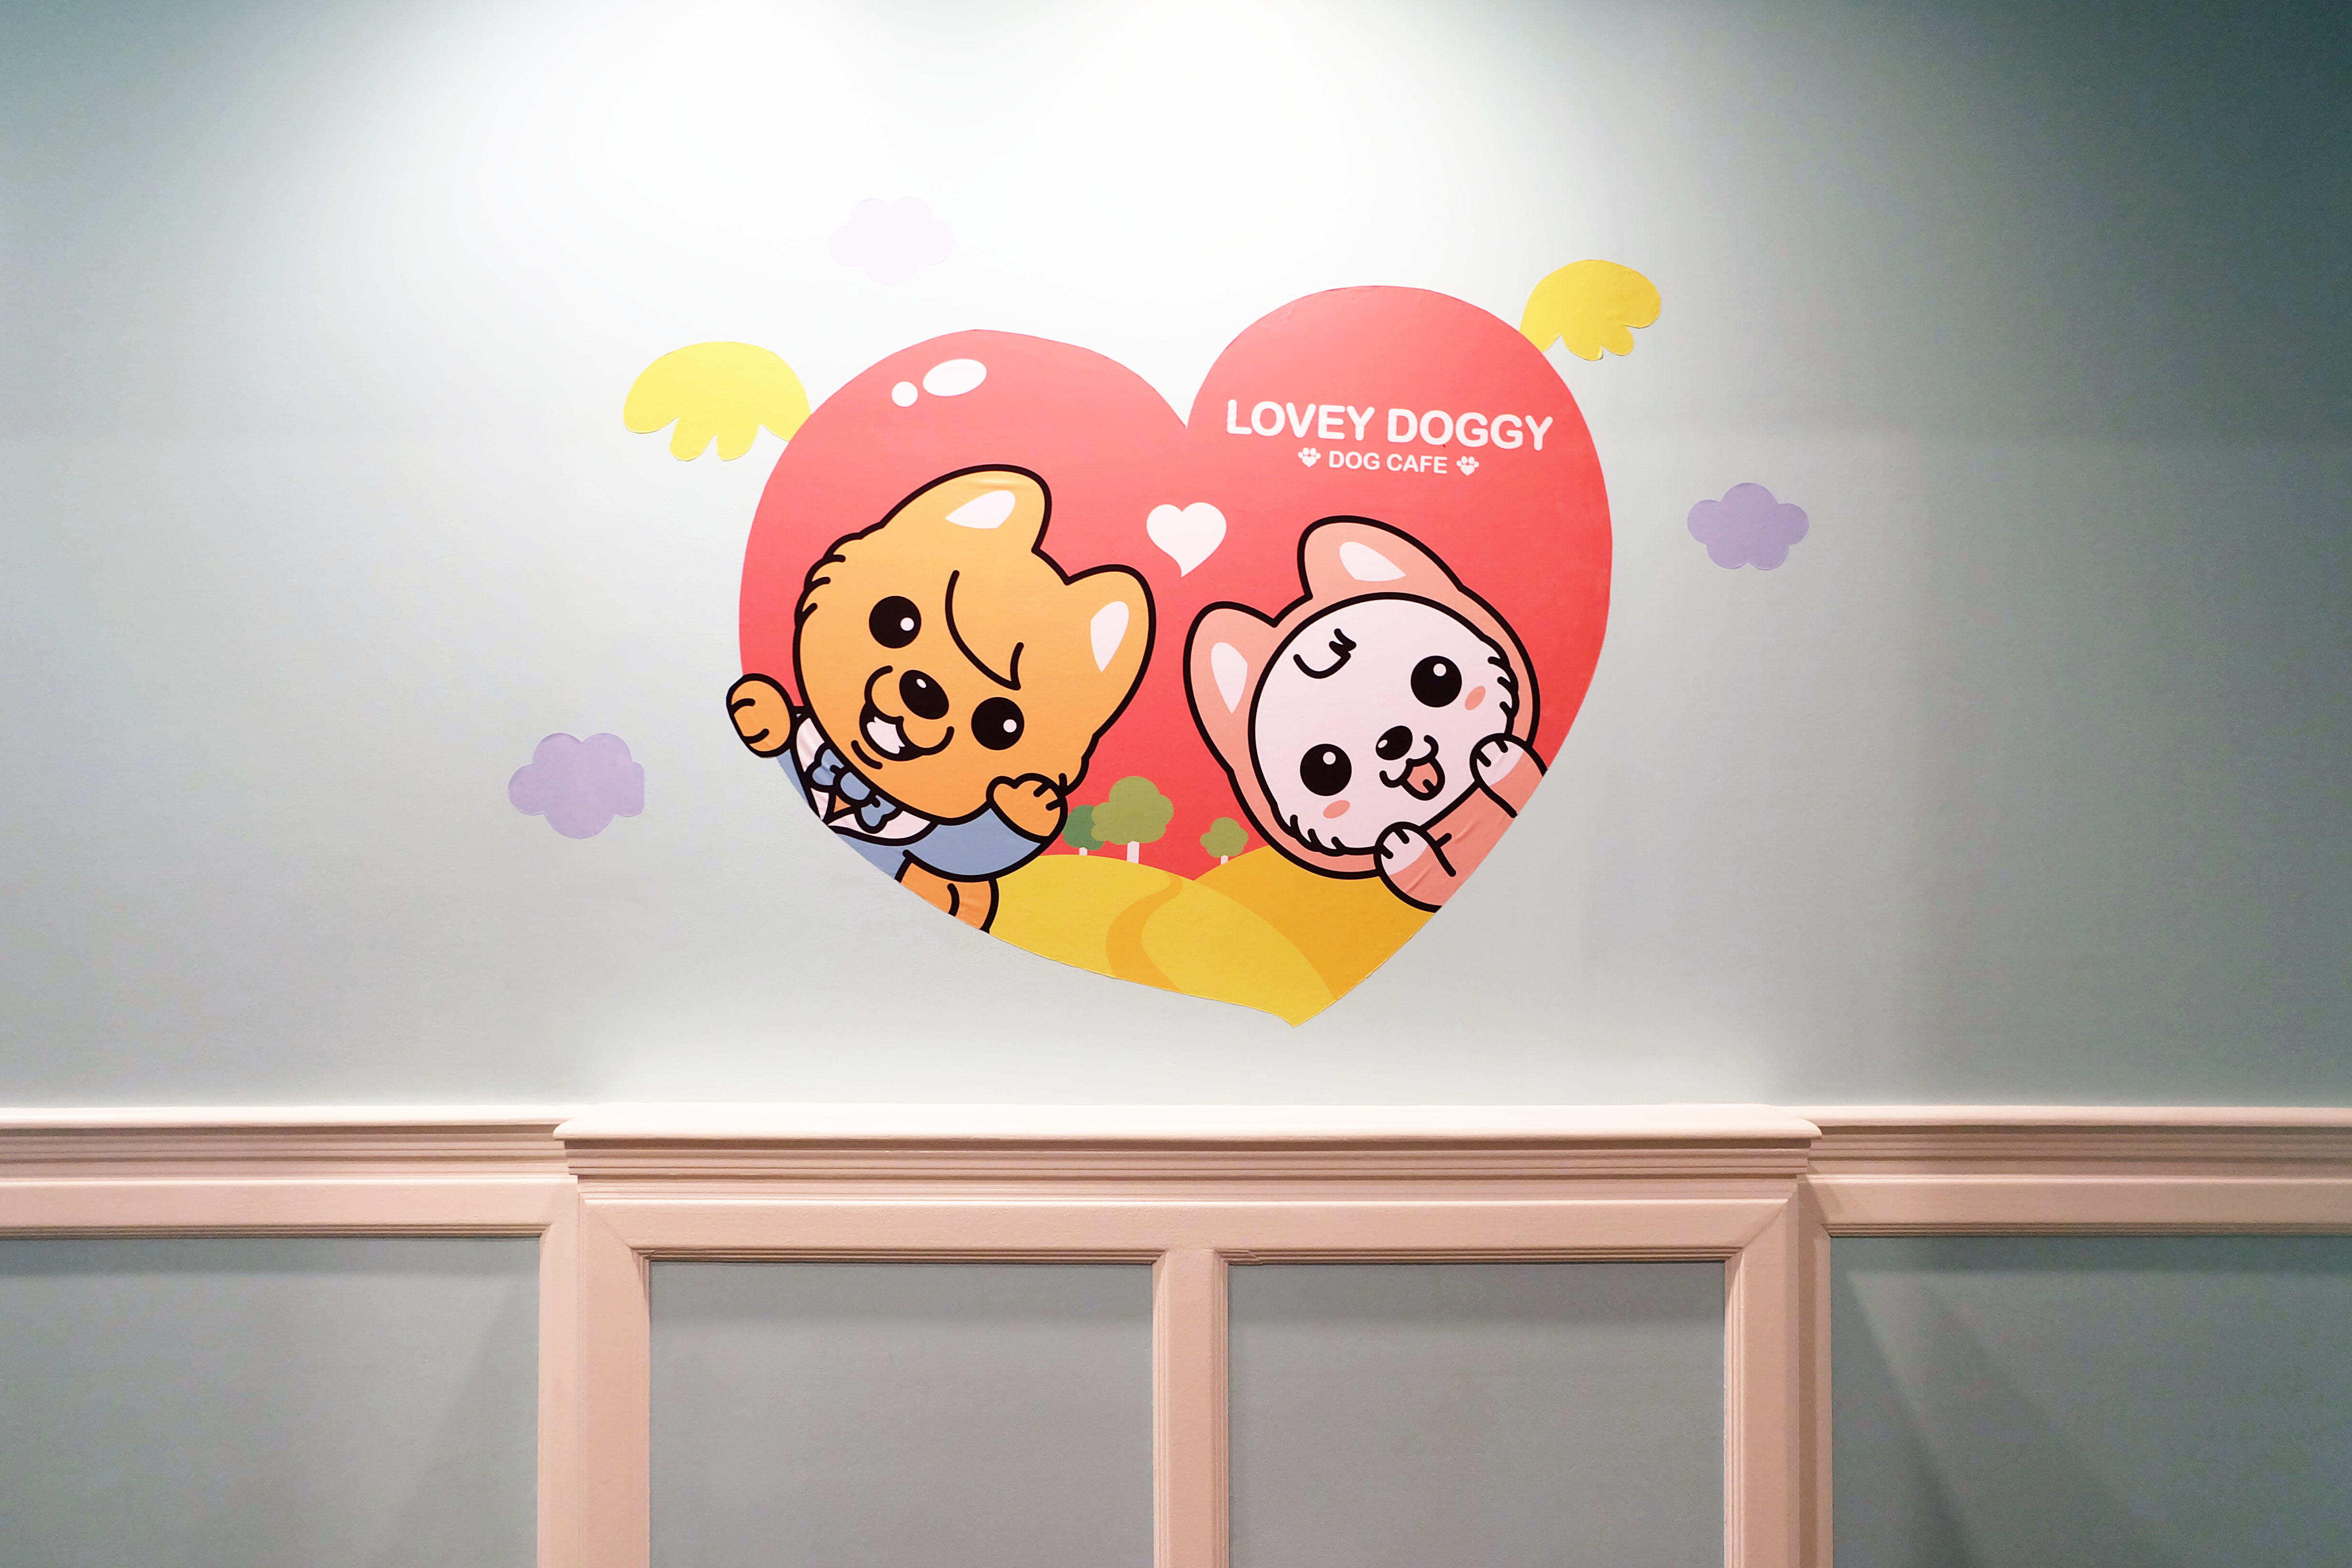 Lovey Doggy Cafe: The First and Only Dog Cafe in Cebu